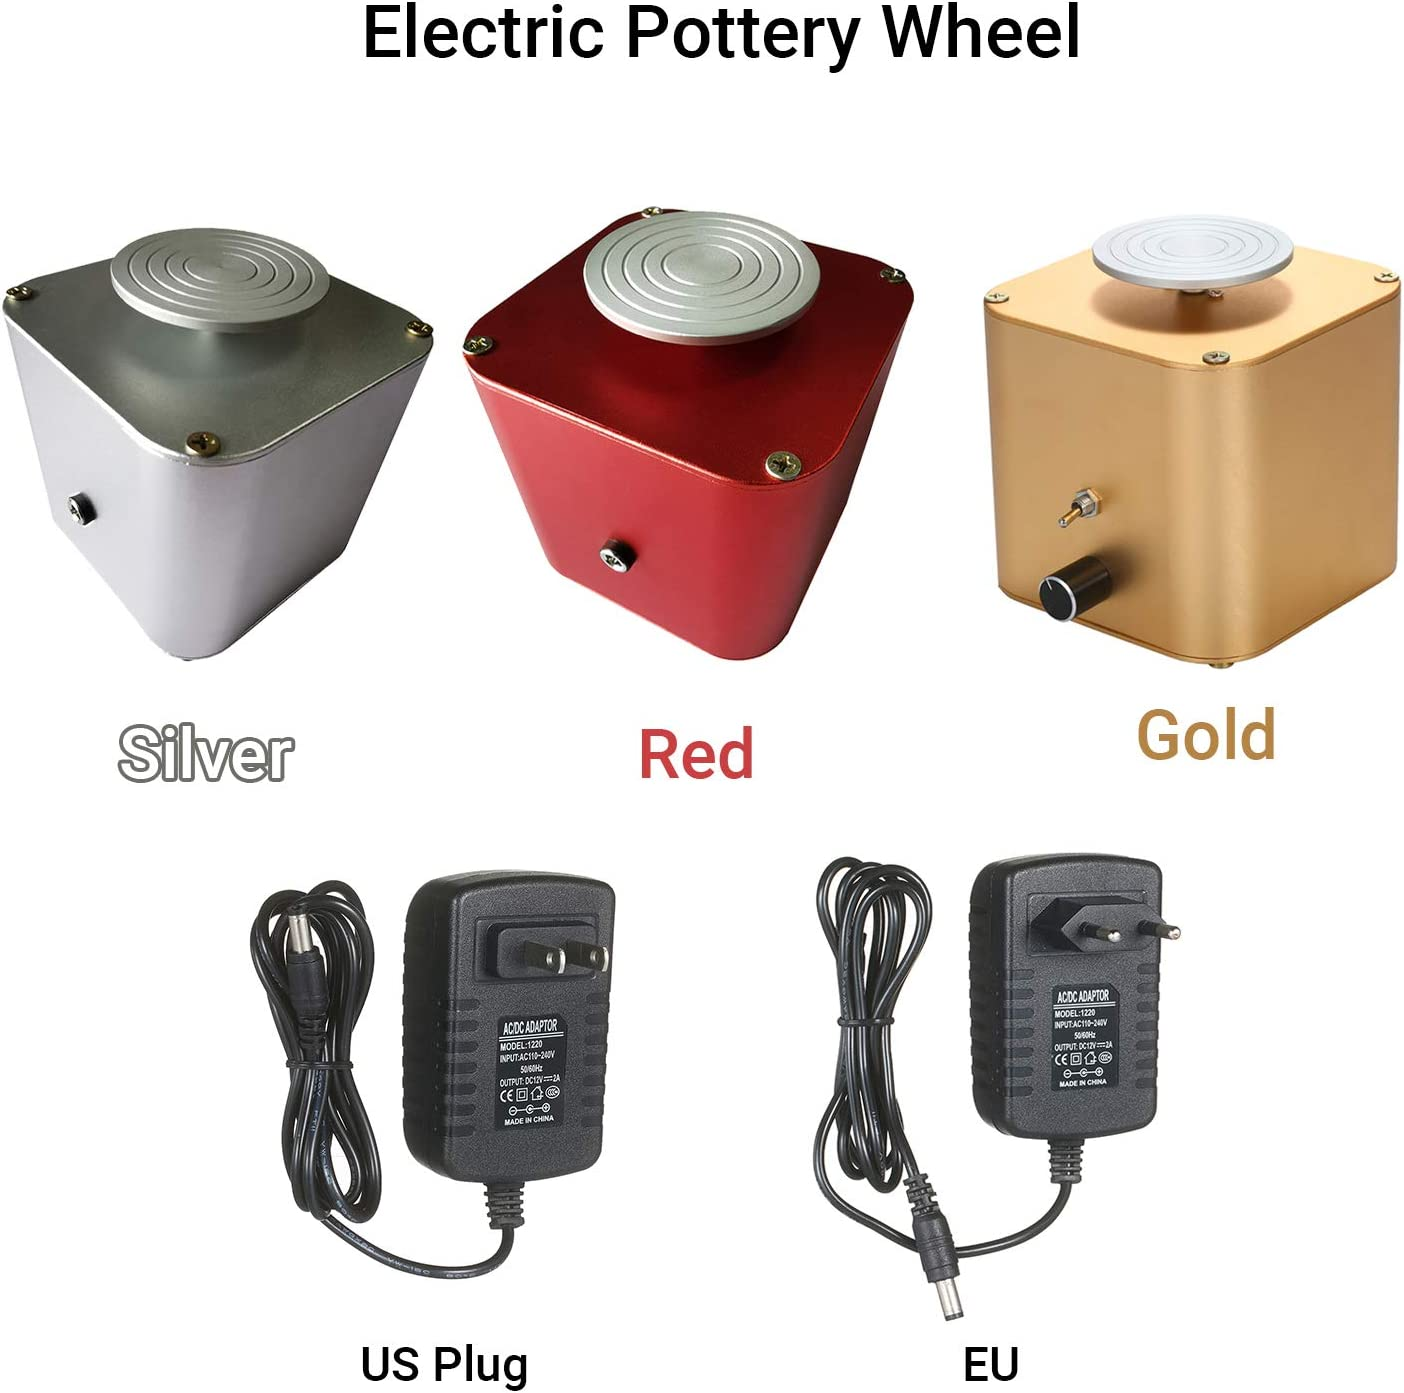 Silver Kecheer Mini Ceramic Machine Clay Sculpting Wheel with Variable Speed and Clockwise//Anticlockwise Rotation DIY Clay Tool for Adults Kids Beginners 6cm Turntable Electric Pottery Wheel Tools